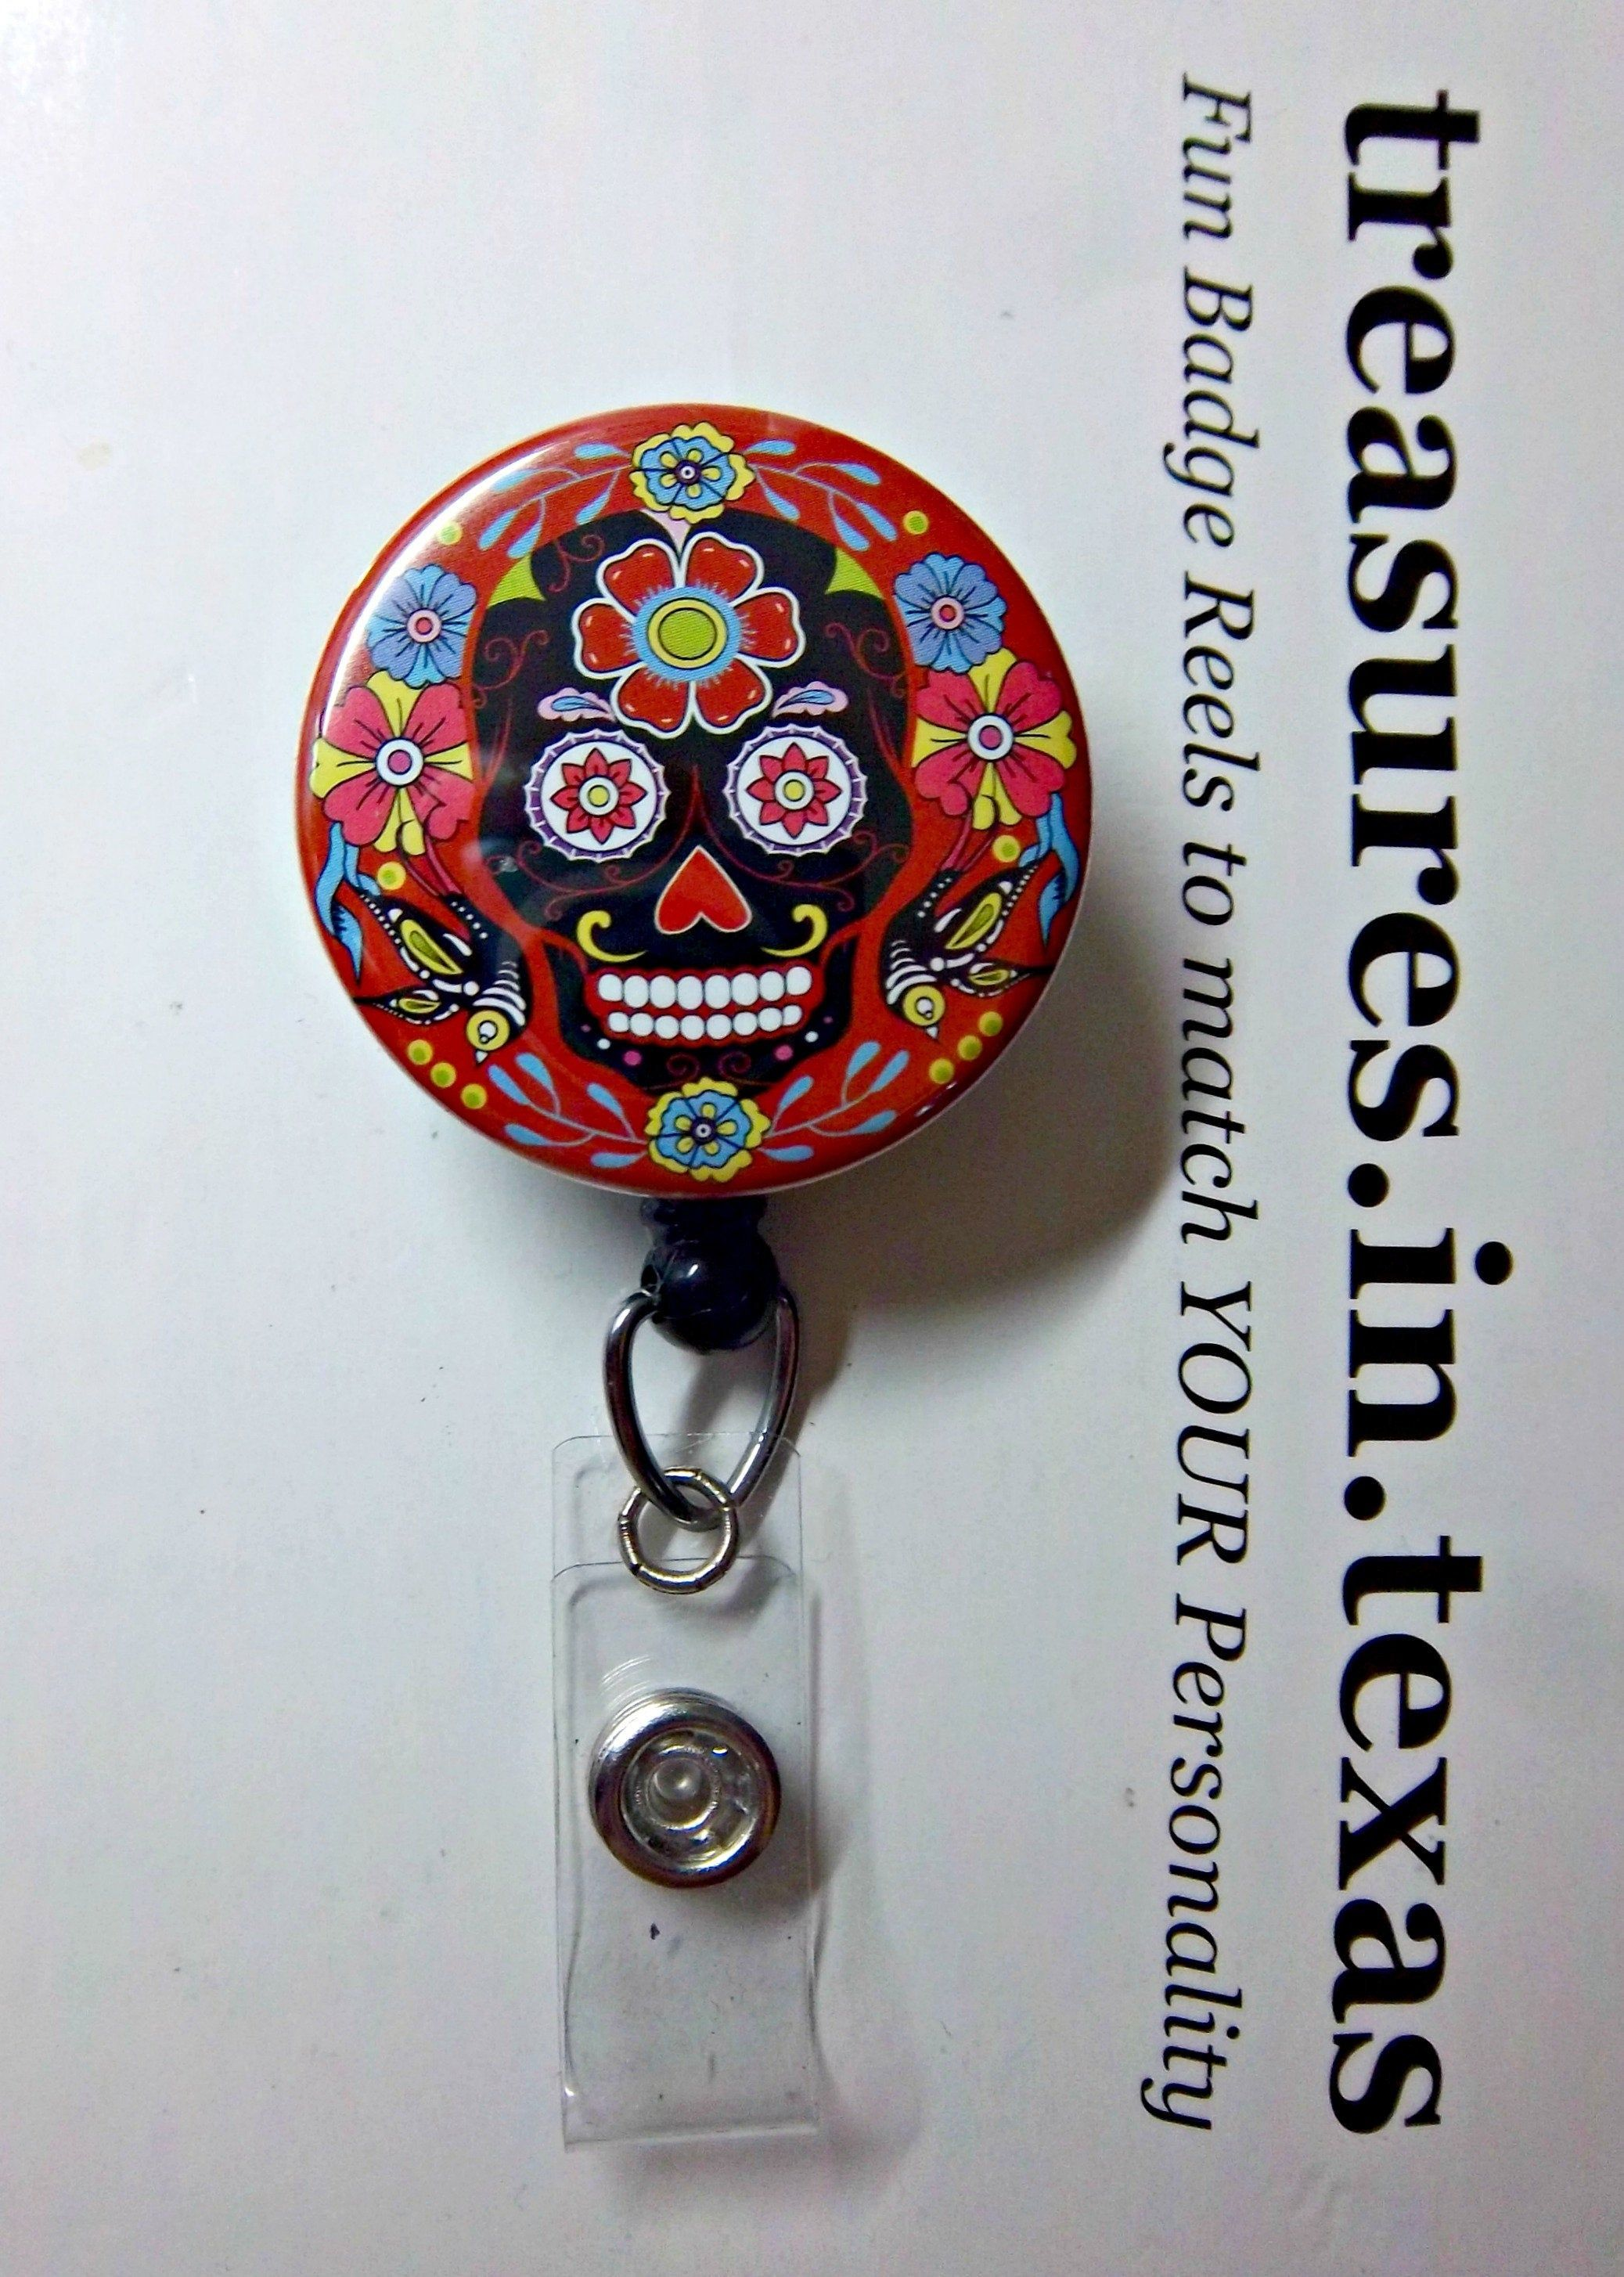 day of the dead celebration ~ Retractable Reel ID Badge White Sugar Skull on Black with Flowers, dia de los muertos you pick style